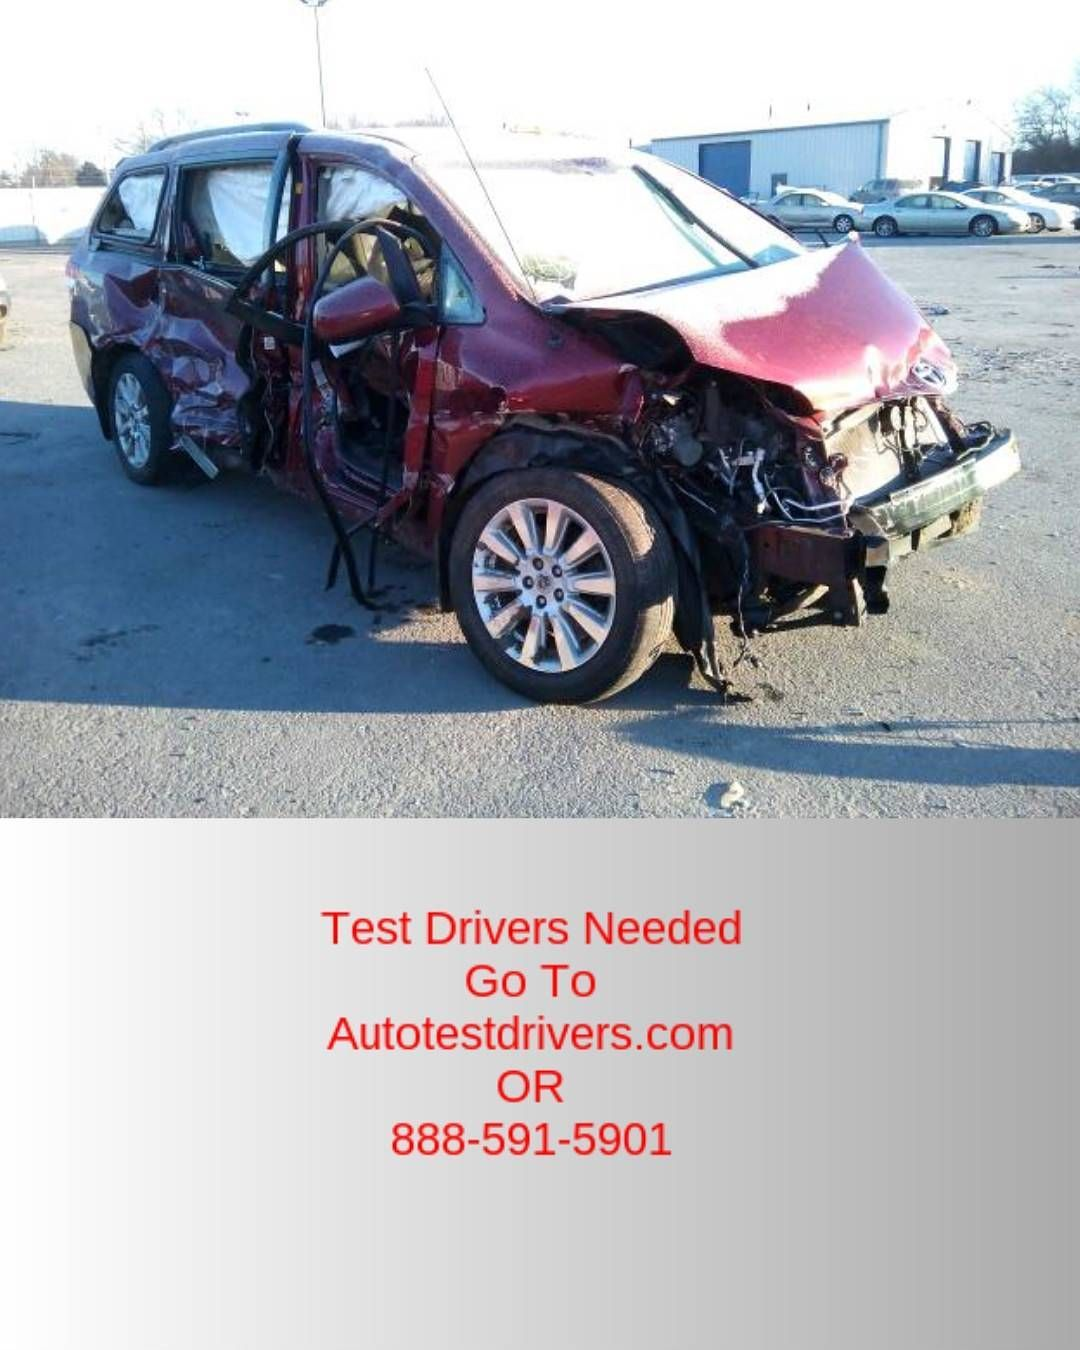 Driving Jobs In York Pa Go To Autotestdrivers Com Or 888 591